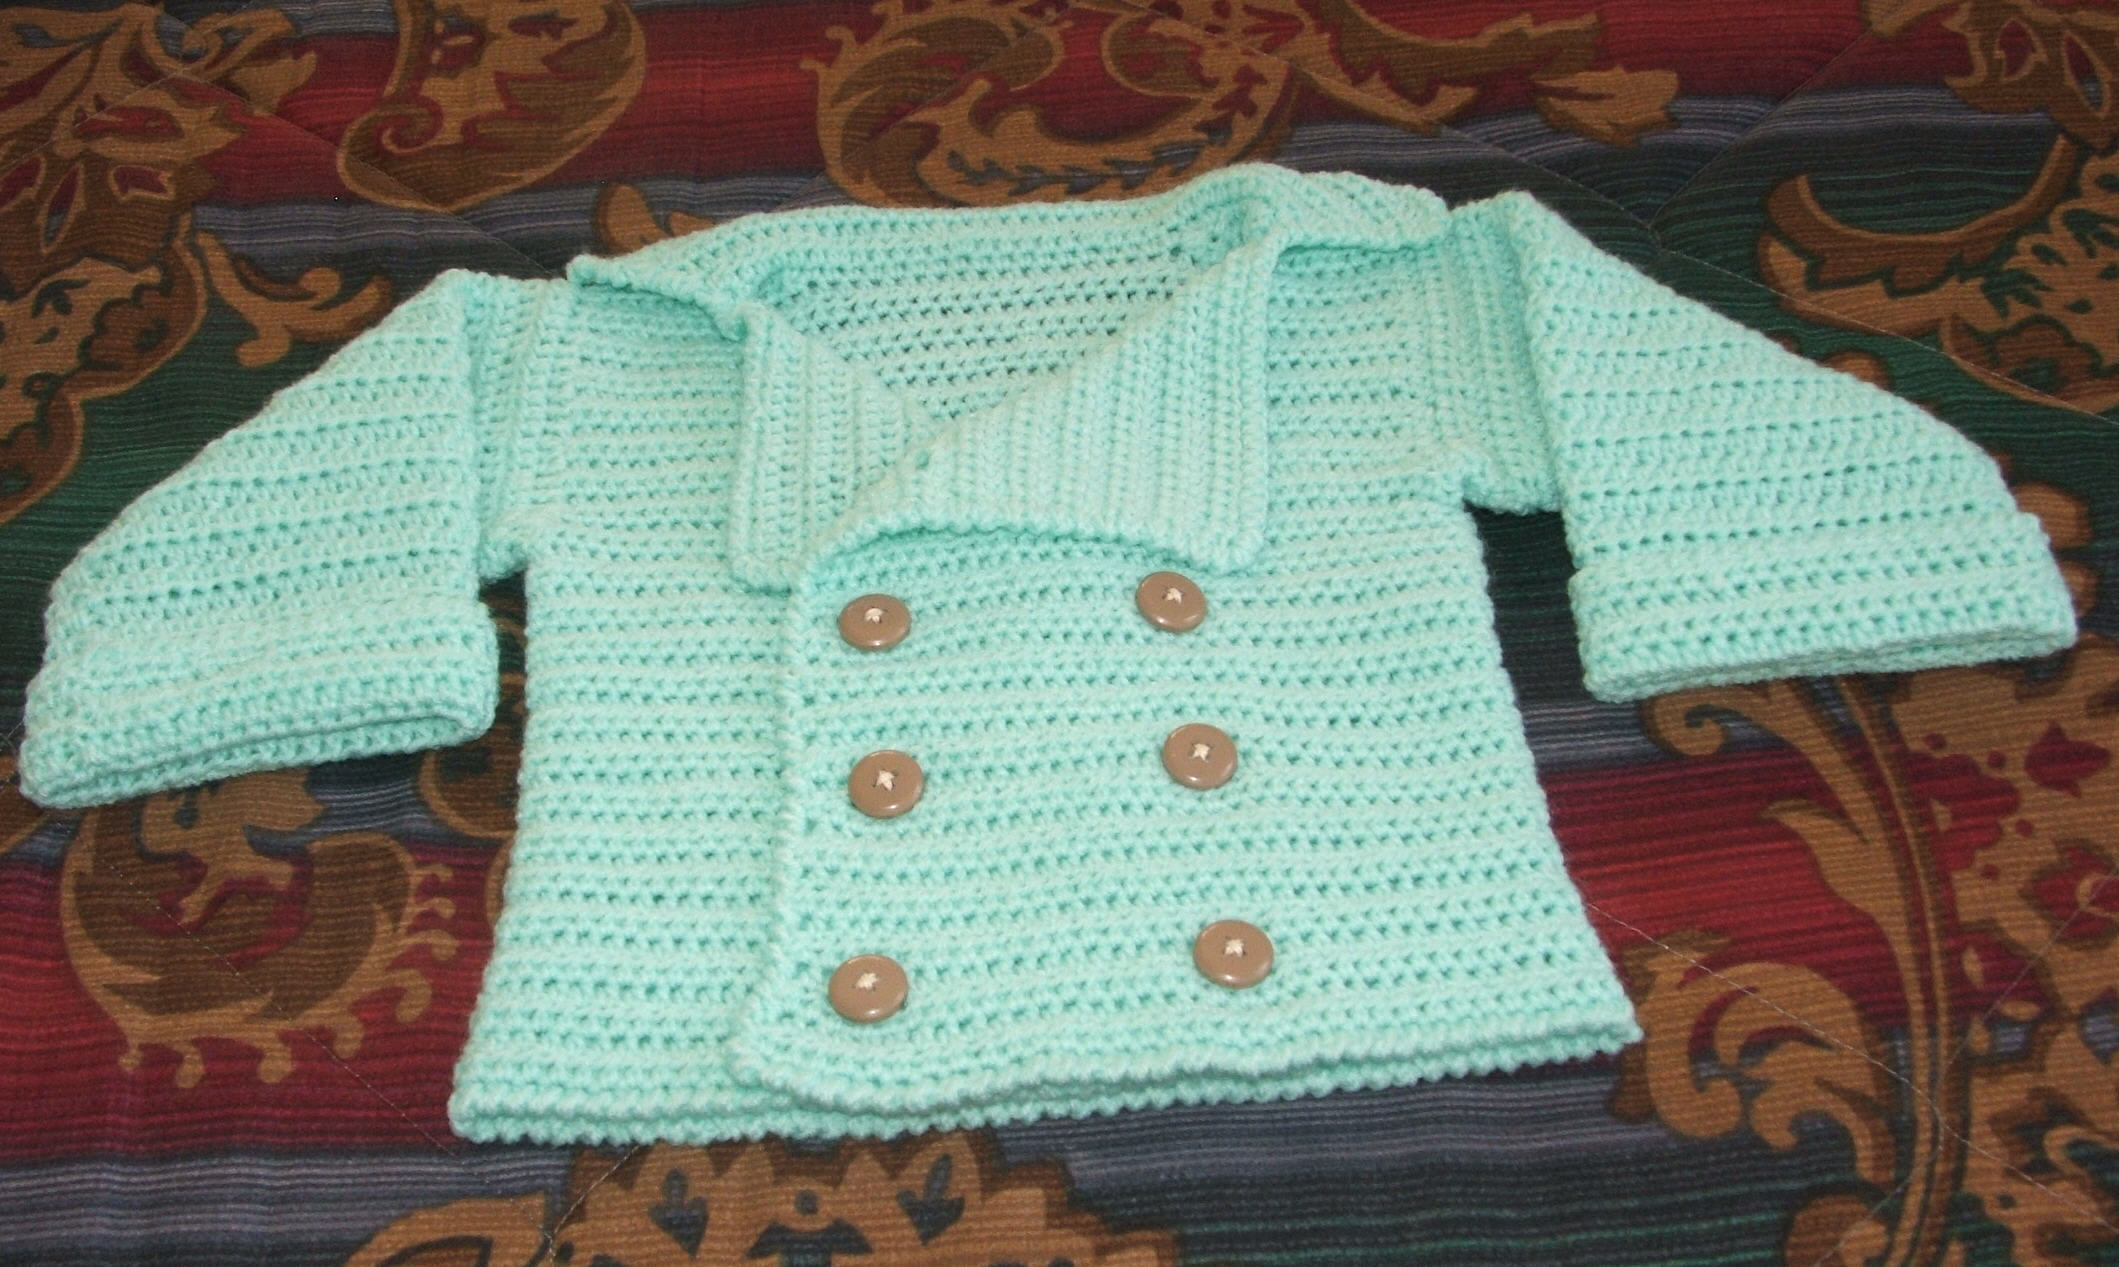 Best Of Infant's Double Breasted Sweater Free Crochet Pattern Free Crochet toddler Sweater Patterns Of Charming 50 Models Free Crochet toddler Sweater Patterns